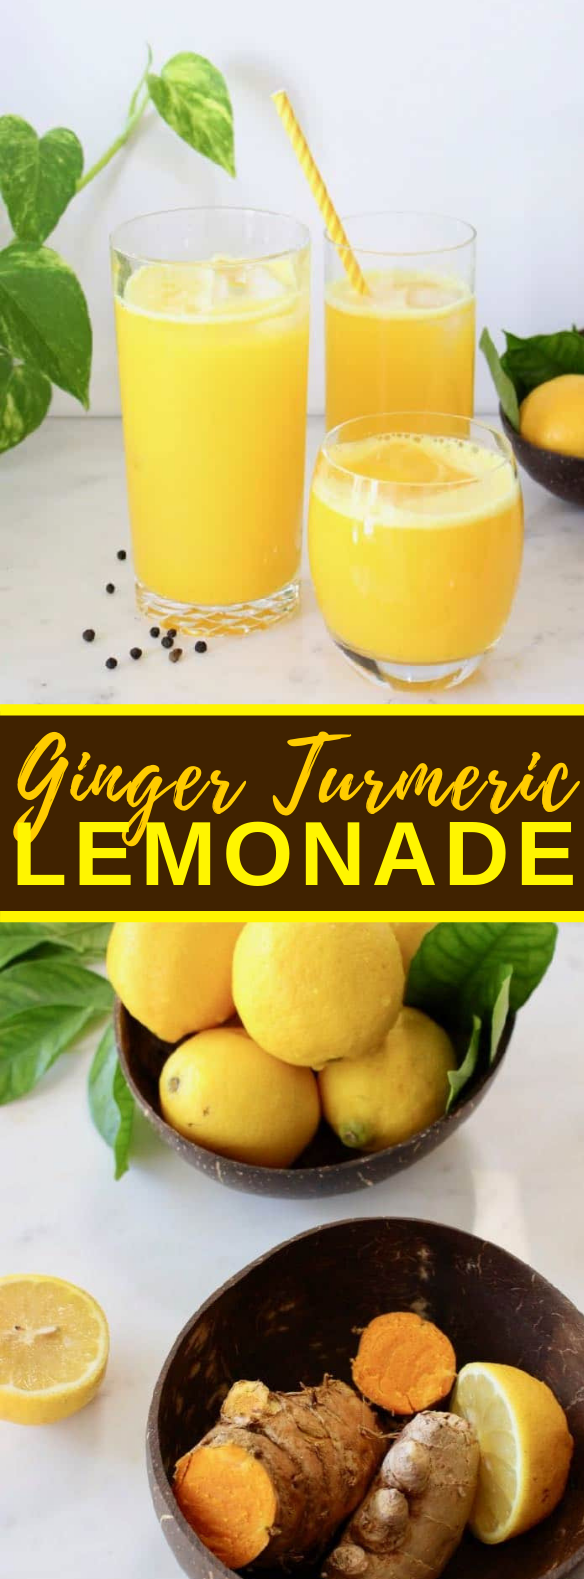 Ginger Turmeric Lemonade Recipe #heatlthydrink #stimulate